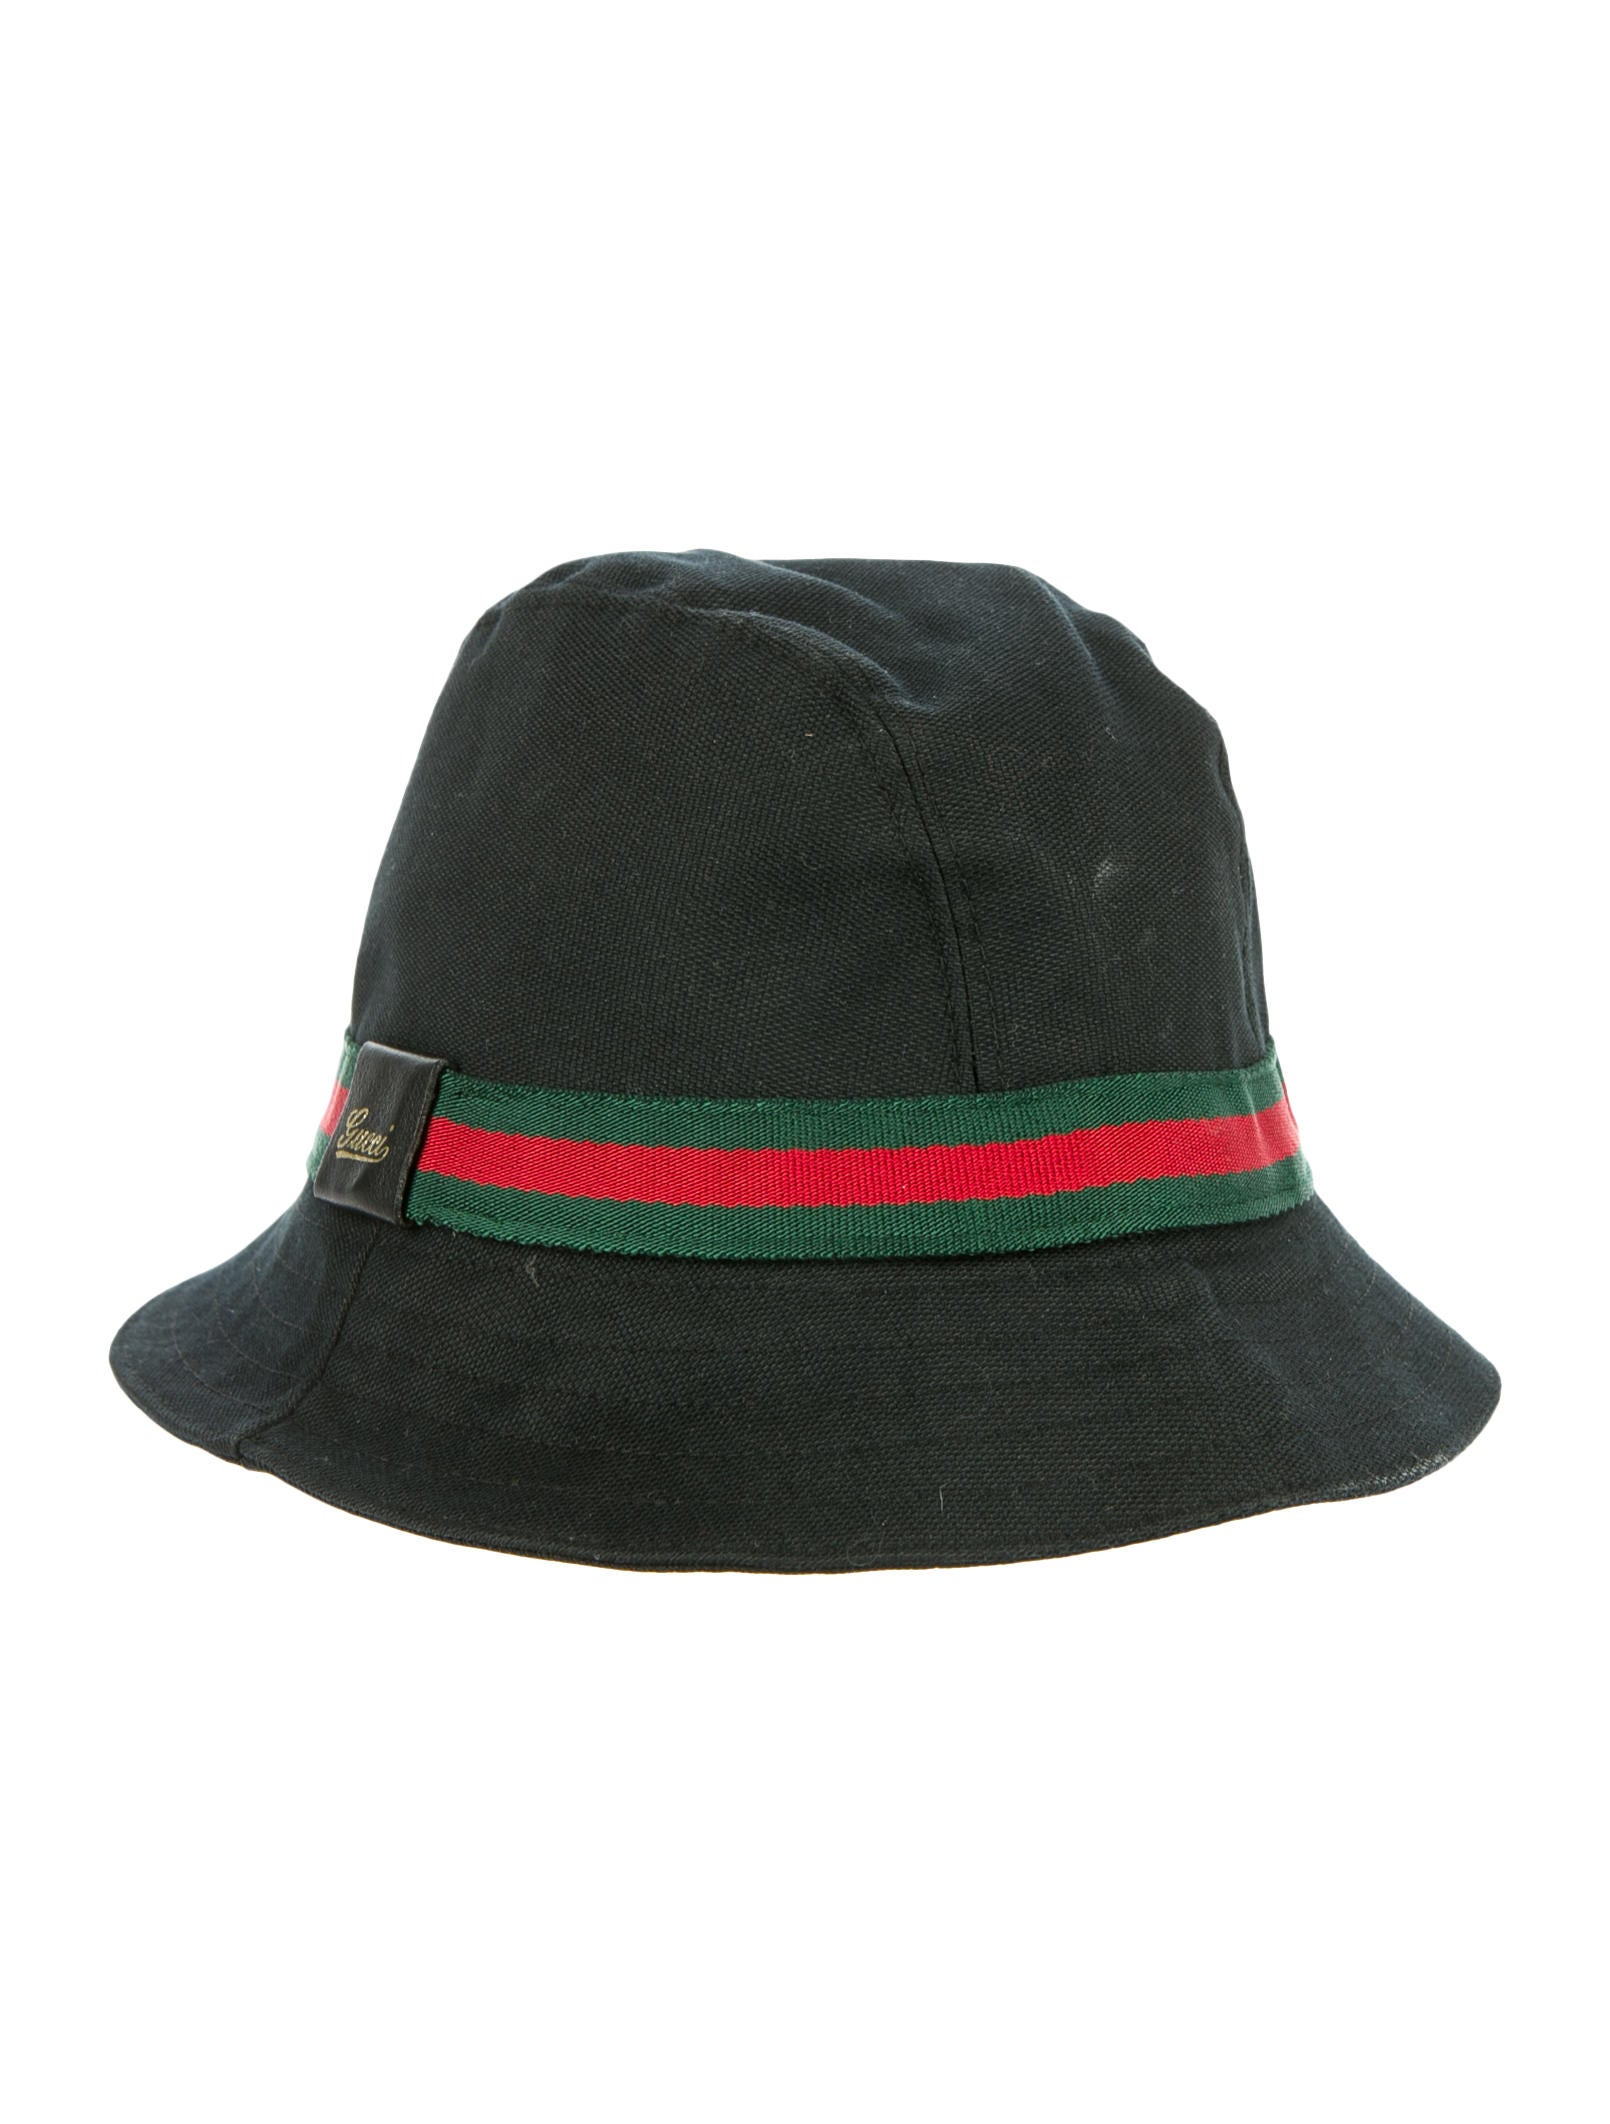 gucci hat accessories guc42688 the realreal